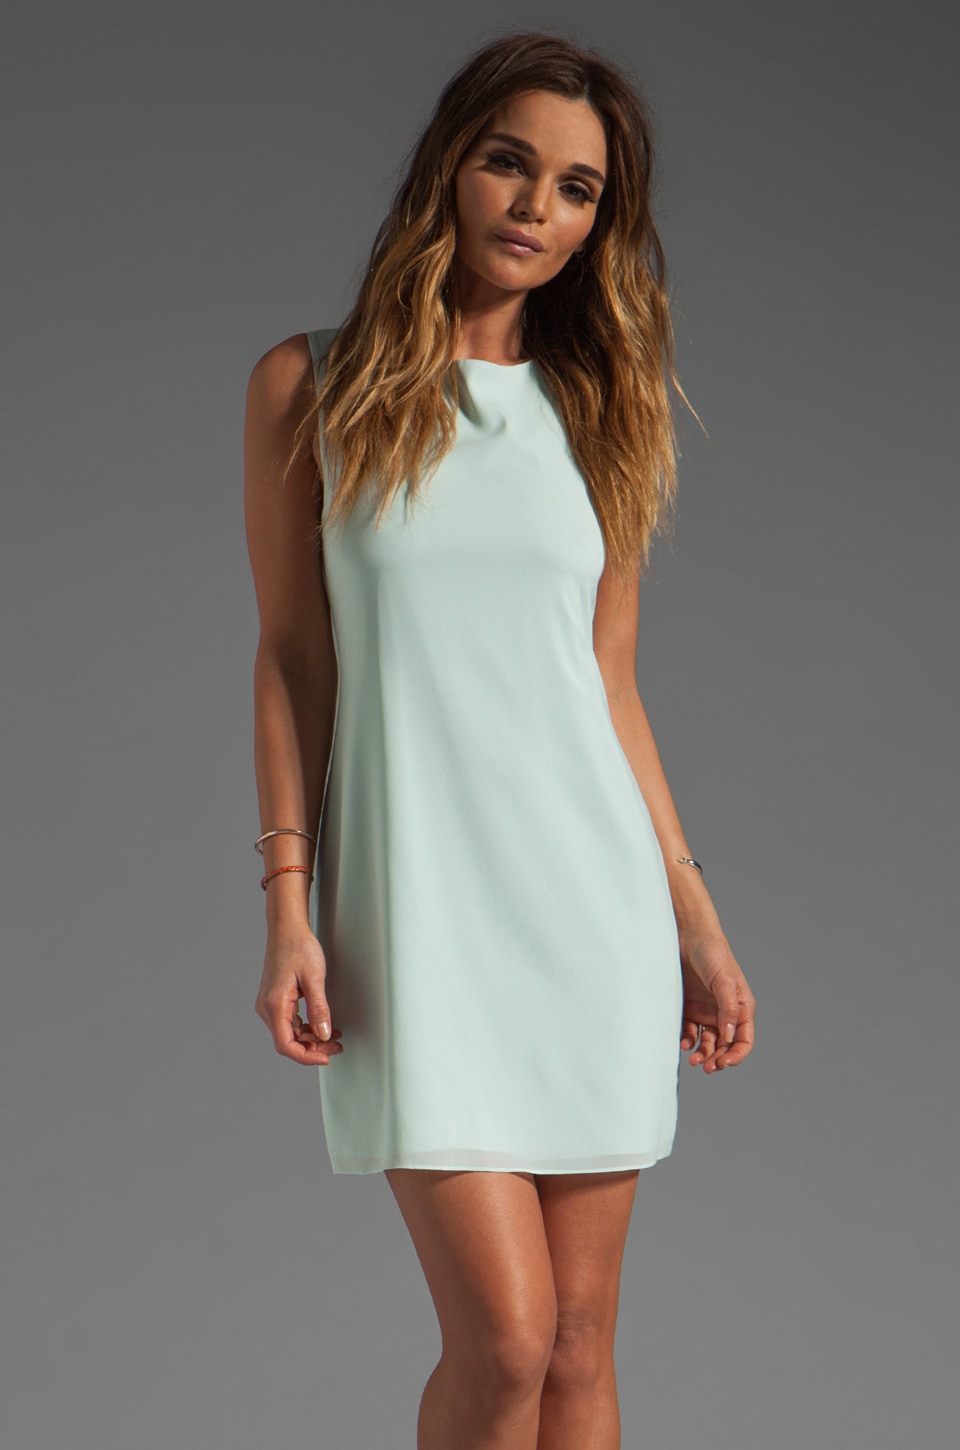 Alice + Olivia Trina Bow Back Tunic Dress in Skylight Aqua